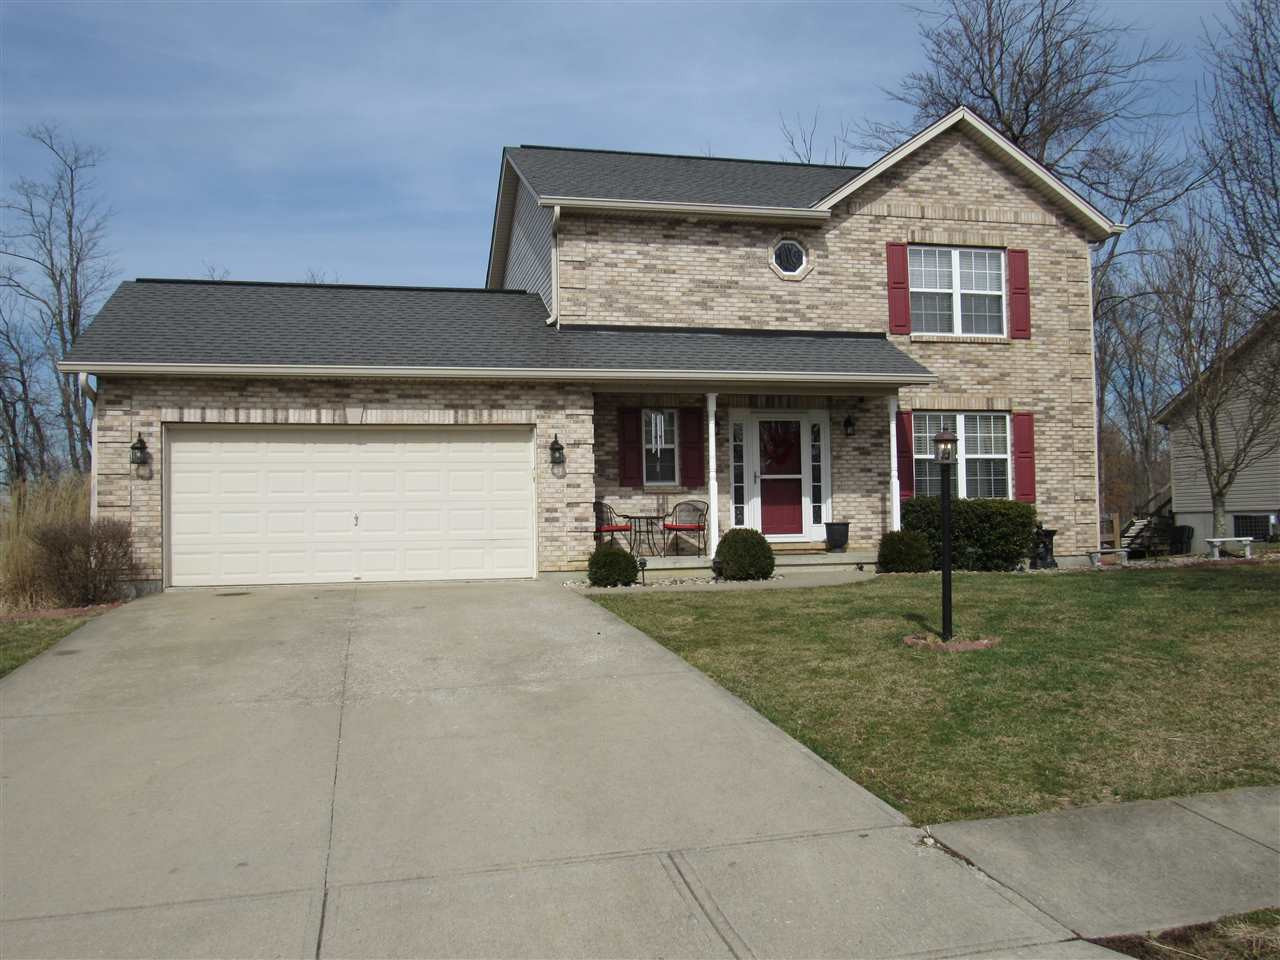 Photo 1 for 415 Claiborne Dr Dry Ridge, KY 41035